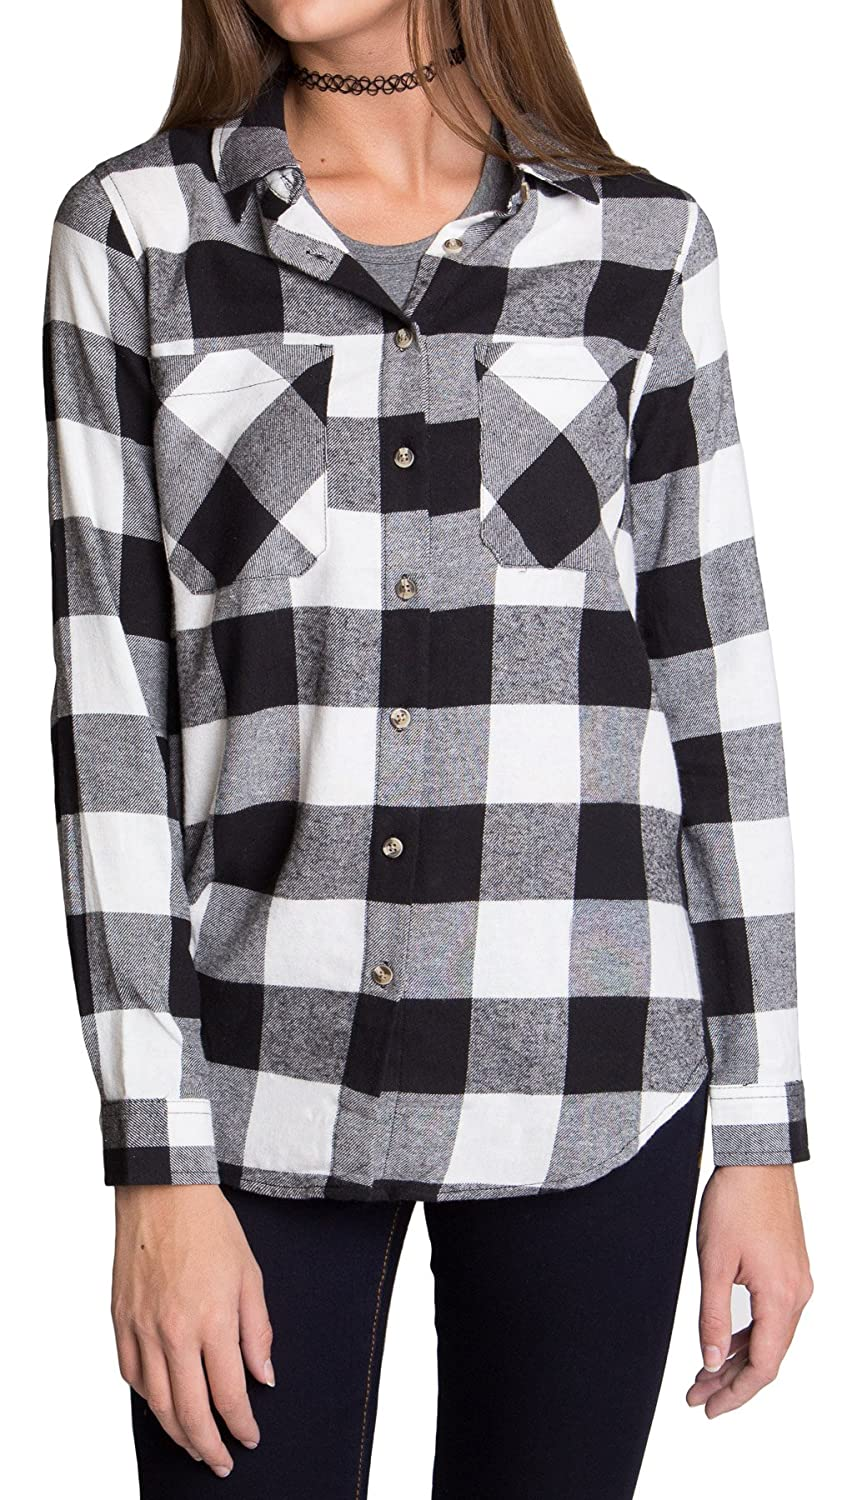 Women's Roll-Up Sleeve Plaid Check Flannel Shirt